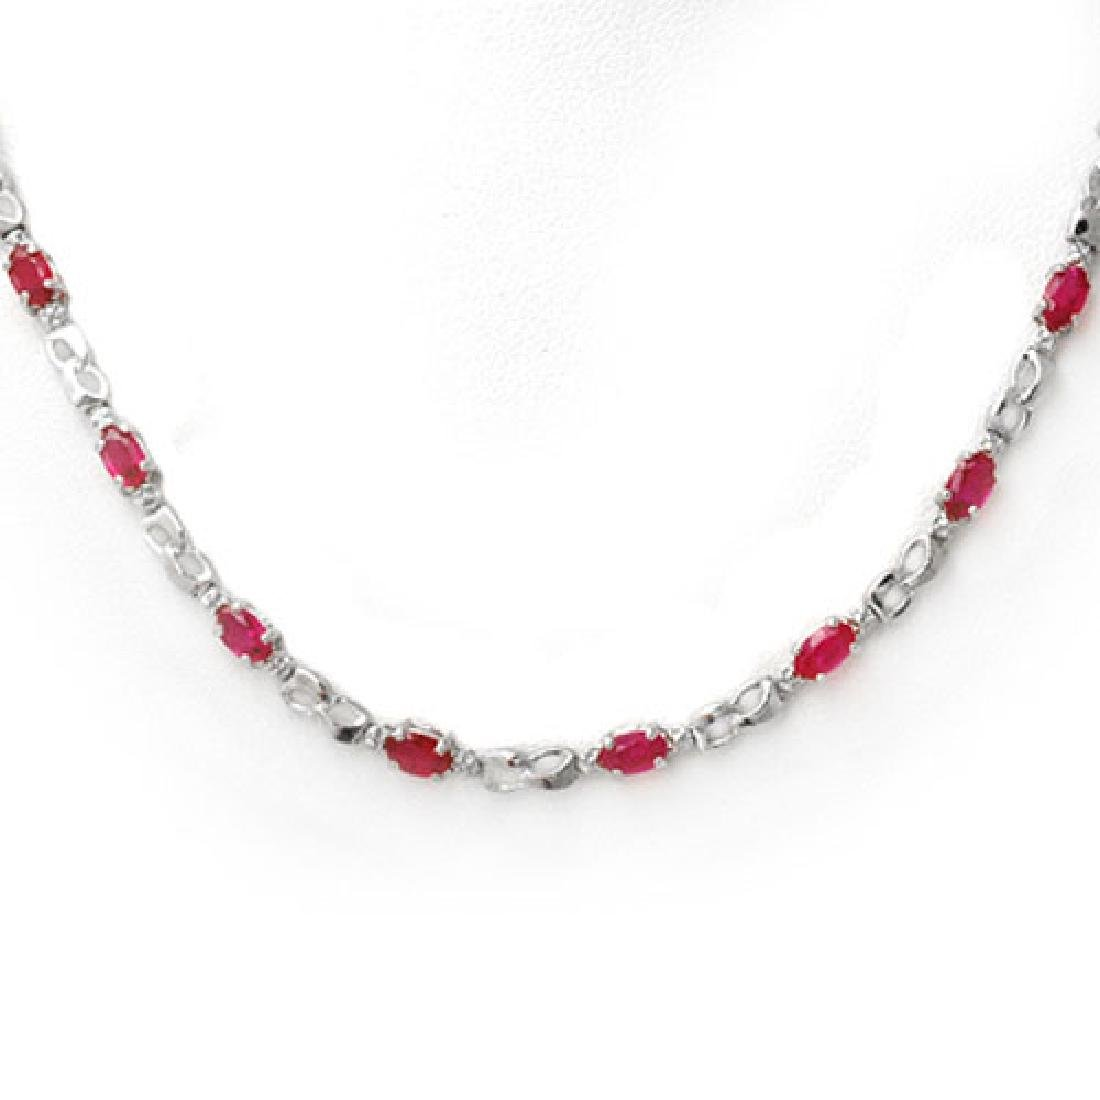 9.02 CTW Ruby & Diamond Necklace 18K White Gold